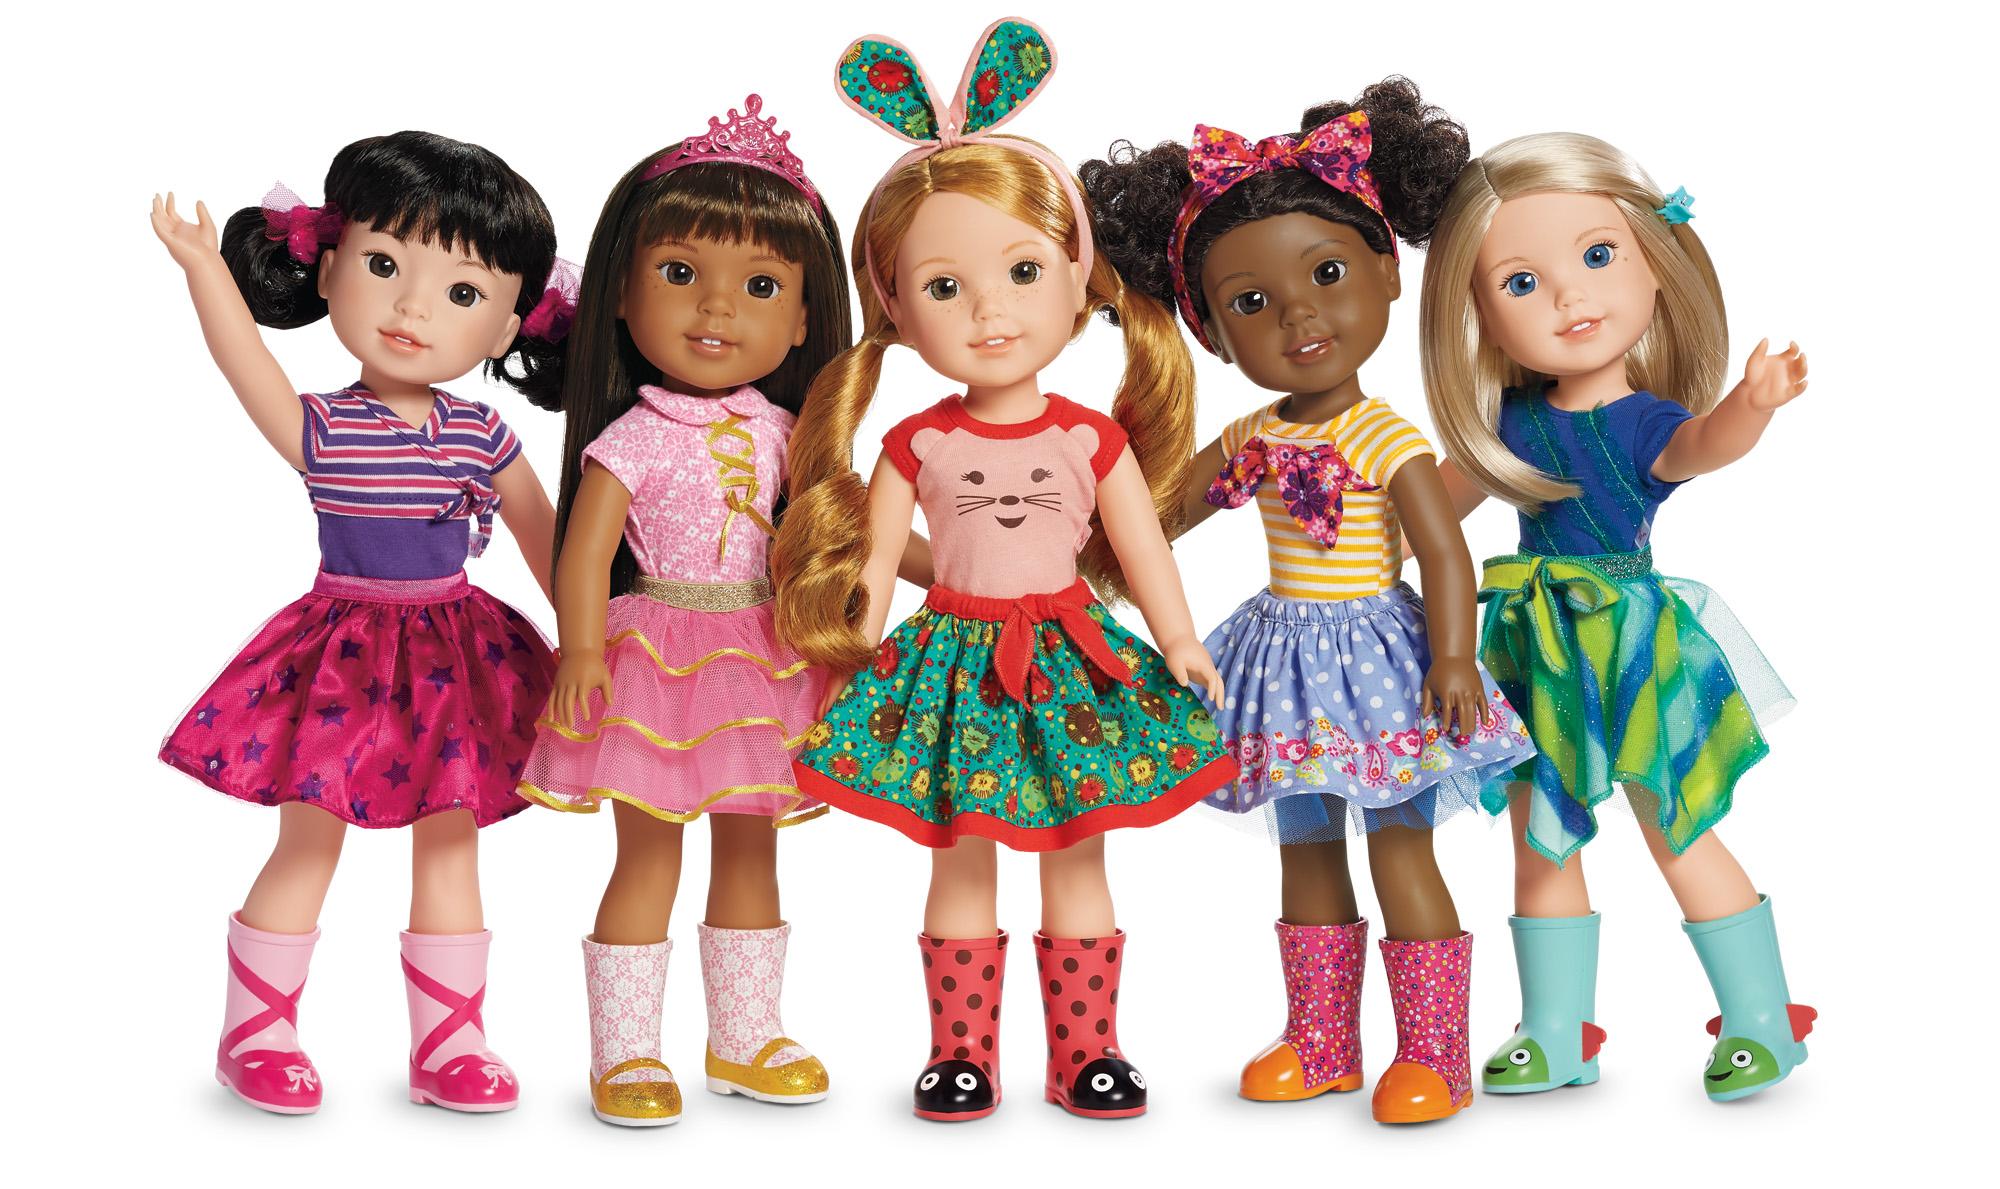 American Girl Launches 'WellieWishers' Doll Line